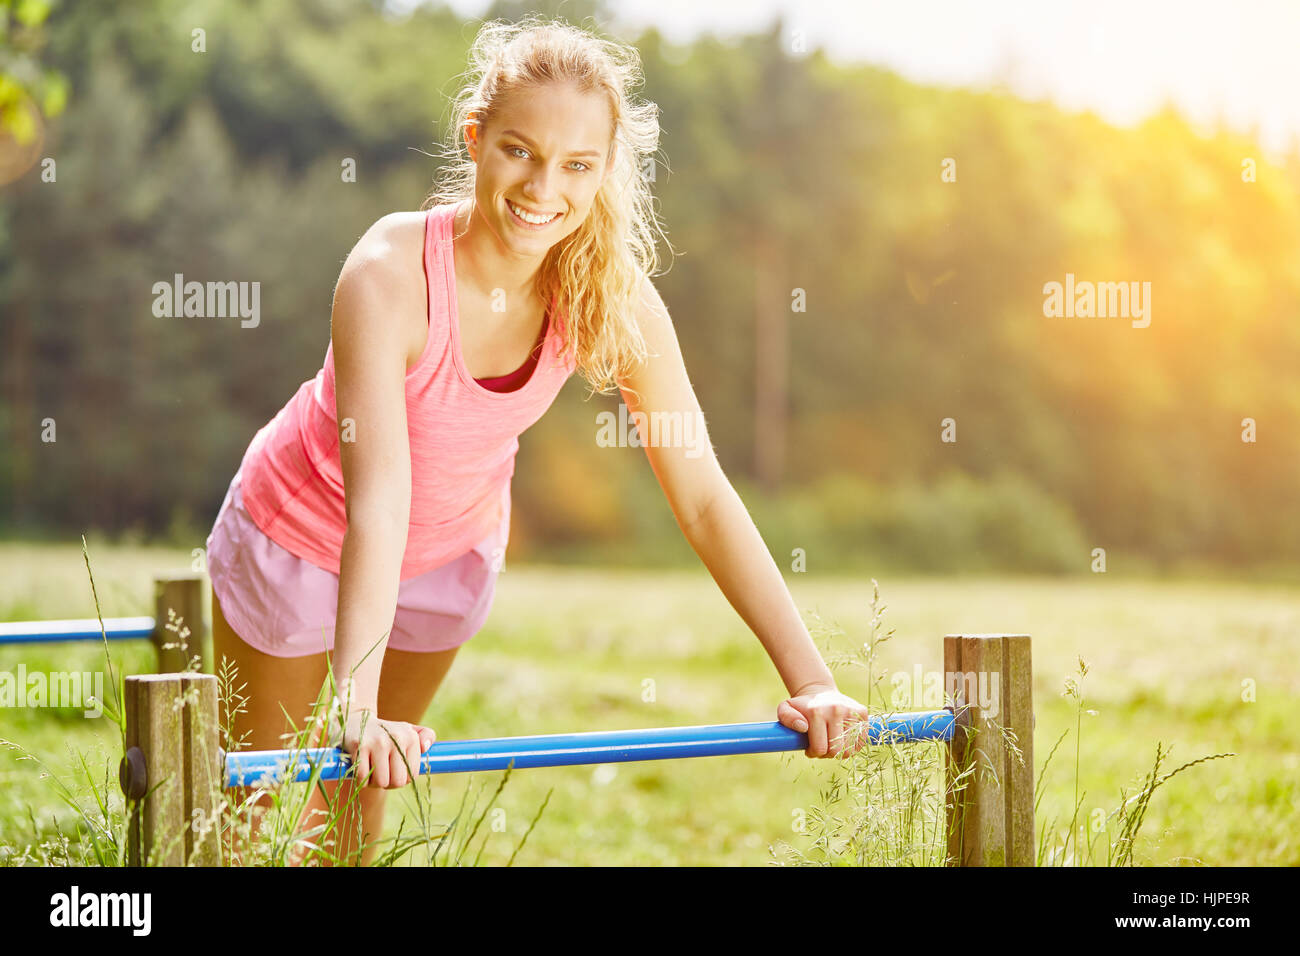 Young woman training in the park to stay fit - Stock Image